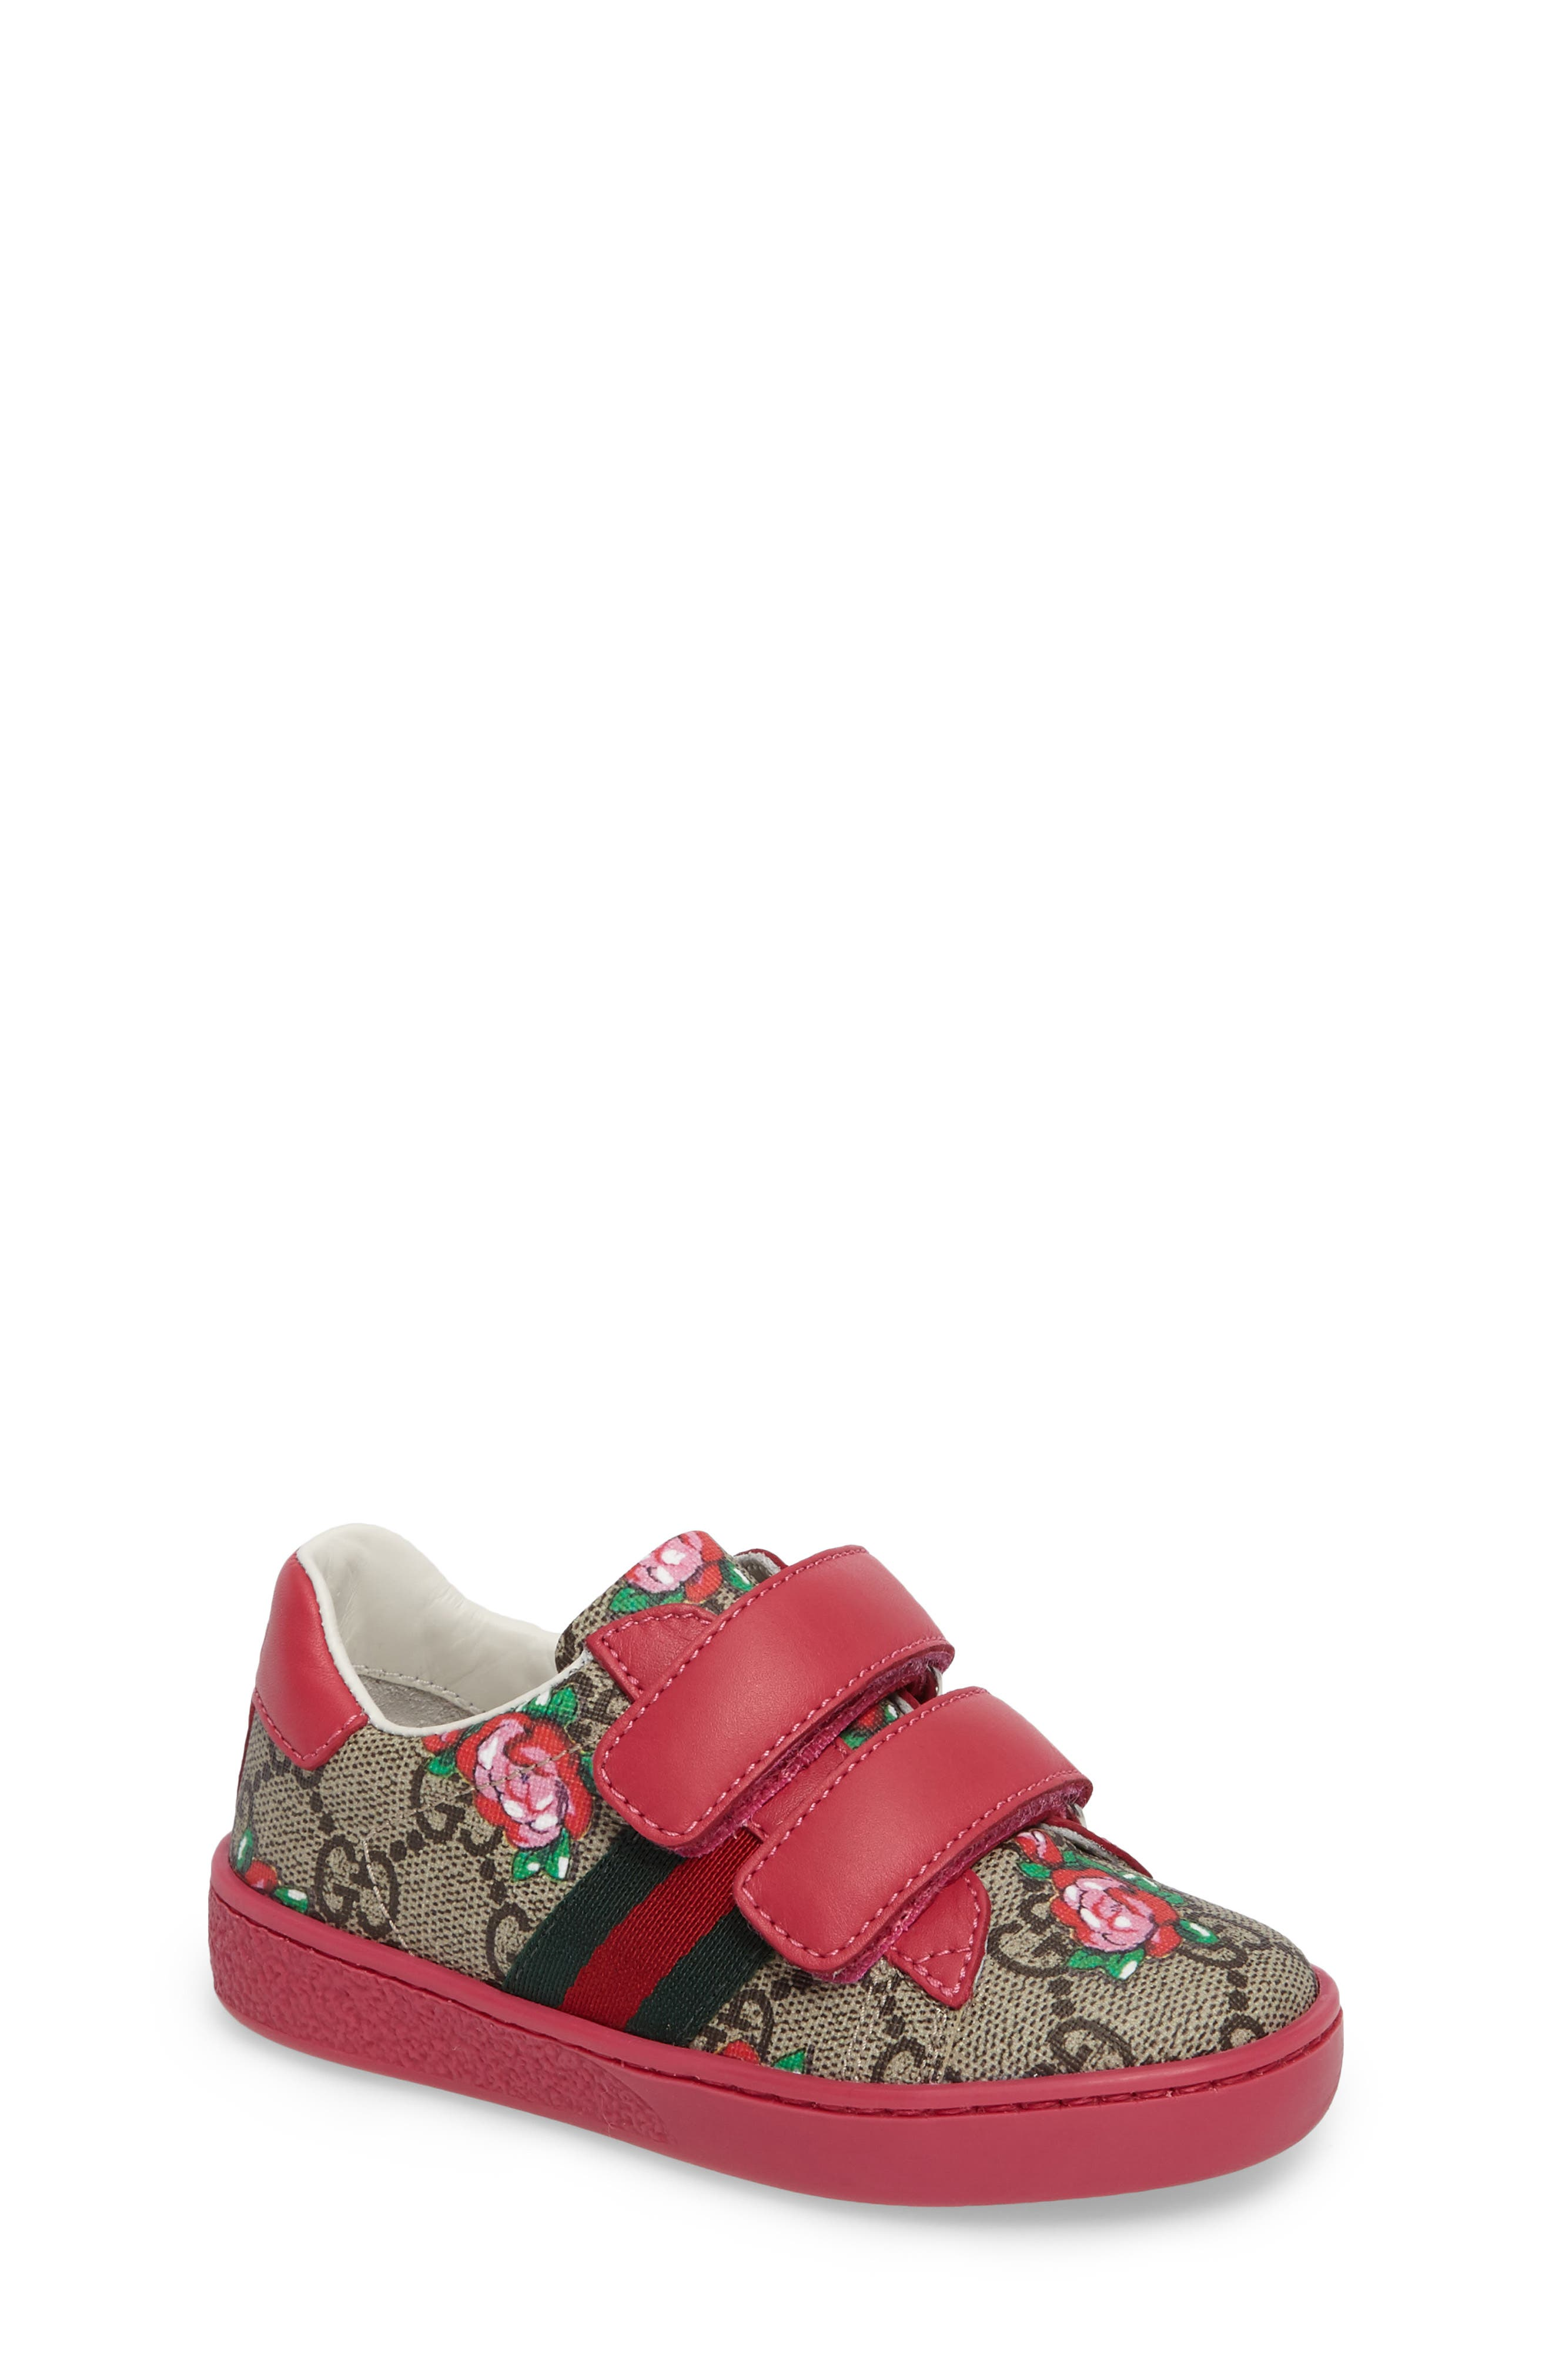 Alternate Image 1 Selected - Gucci New Ace Monogram Sneaker (Baby, Walker & Toddler)